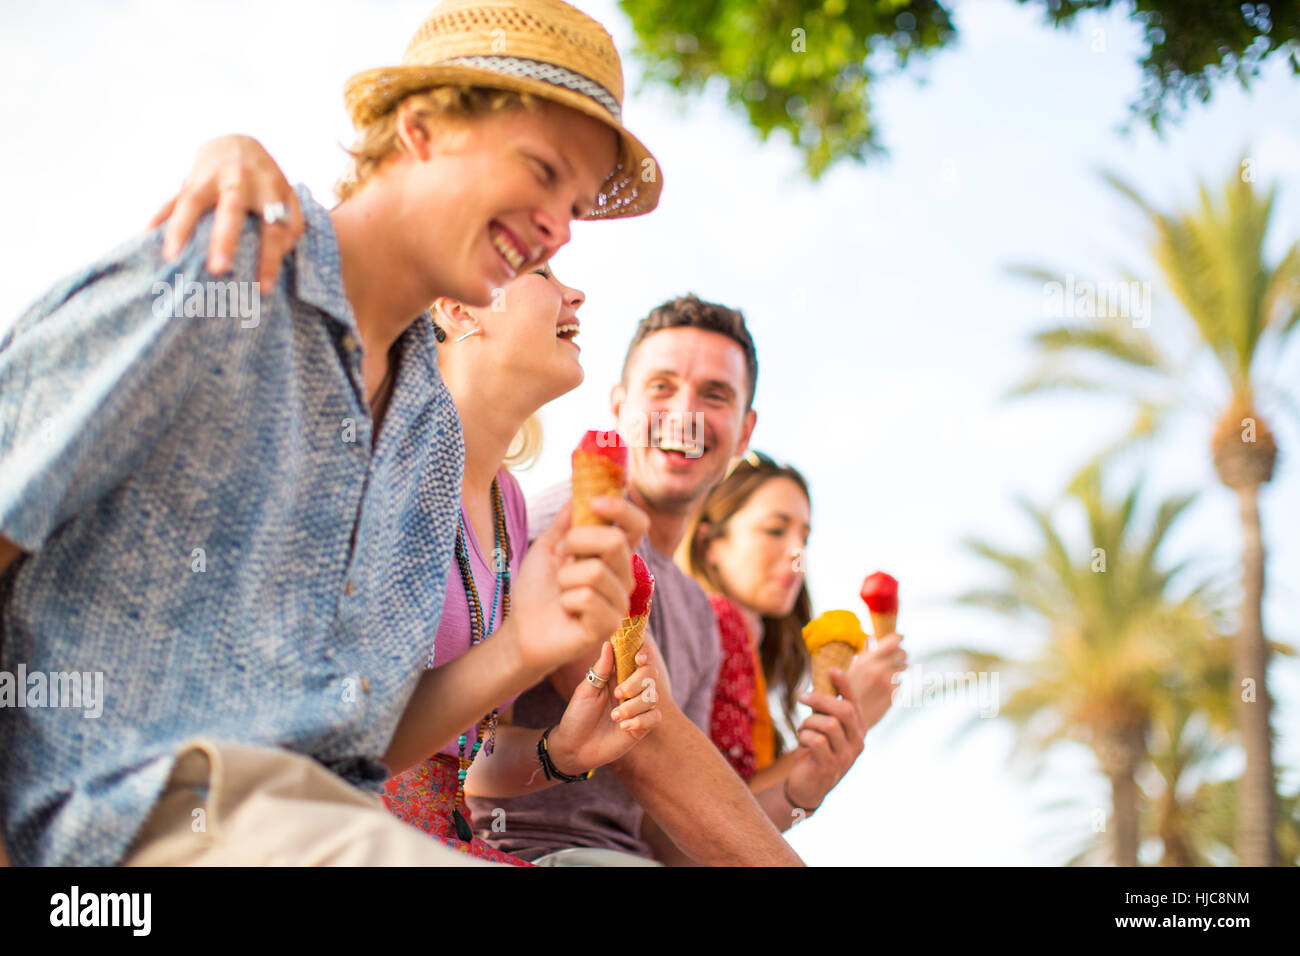 Four adult friends laughing and eating ice cream cones, Majorca, Spain - Stock Image